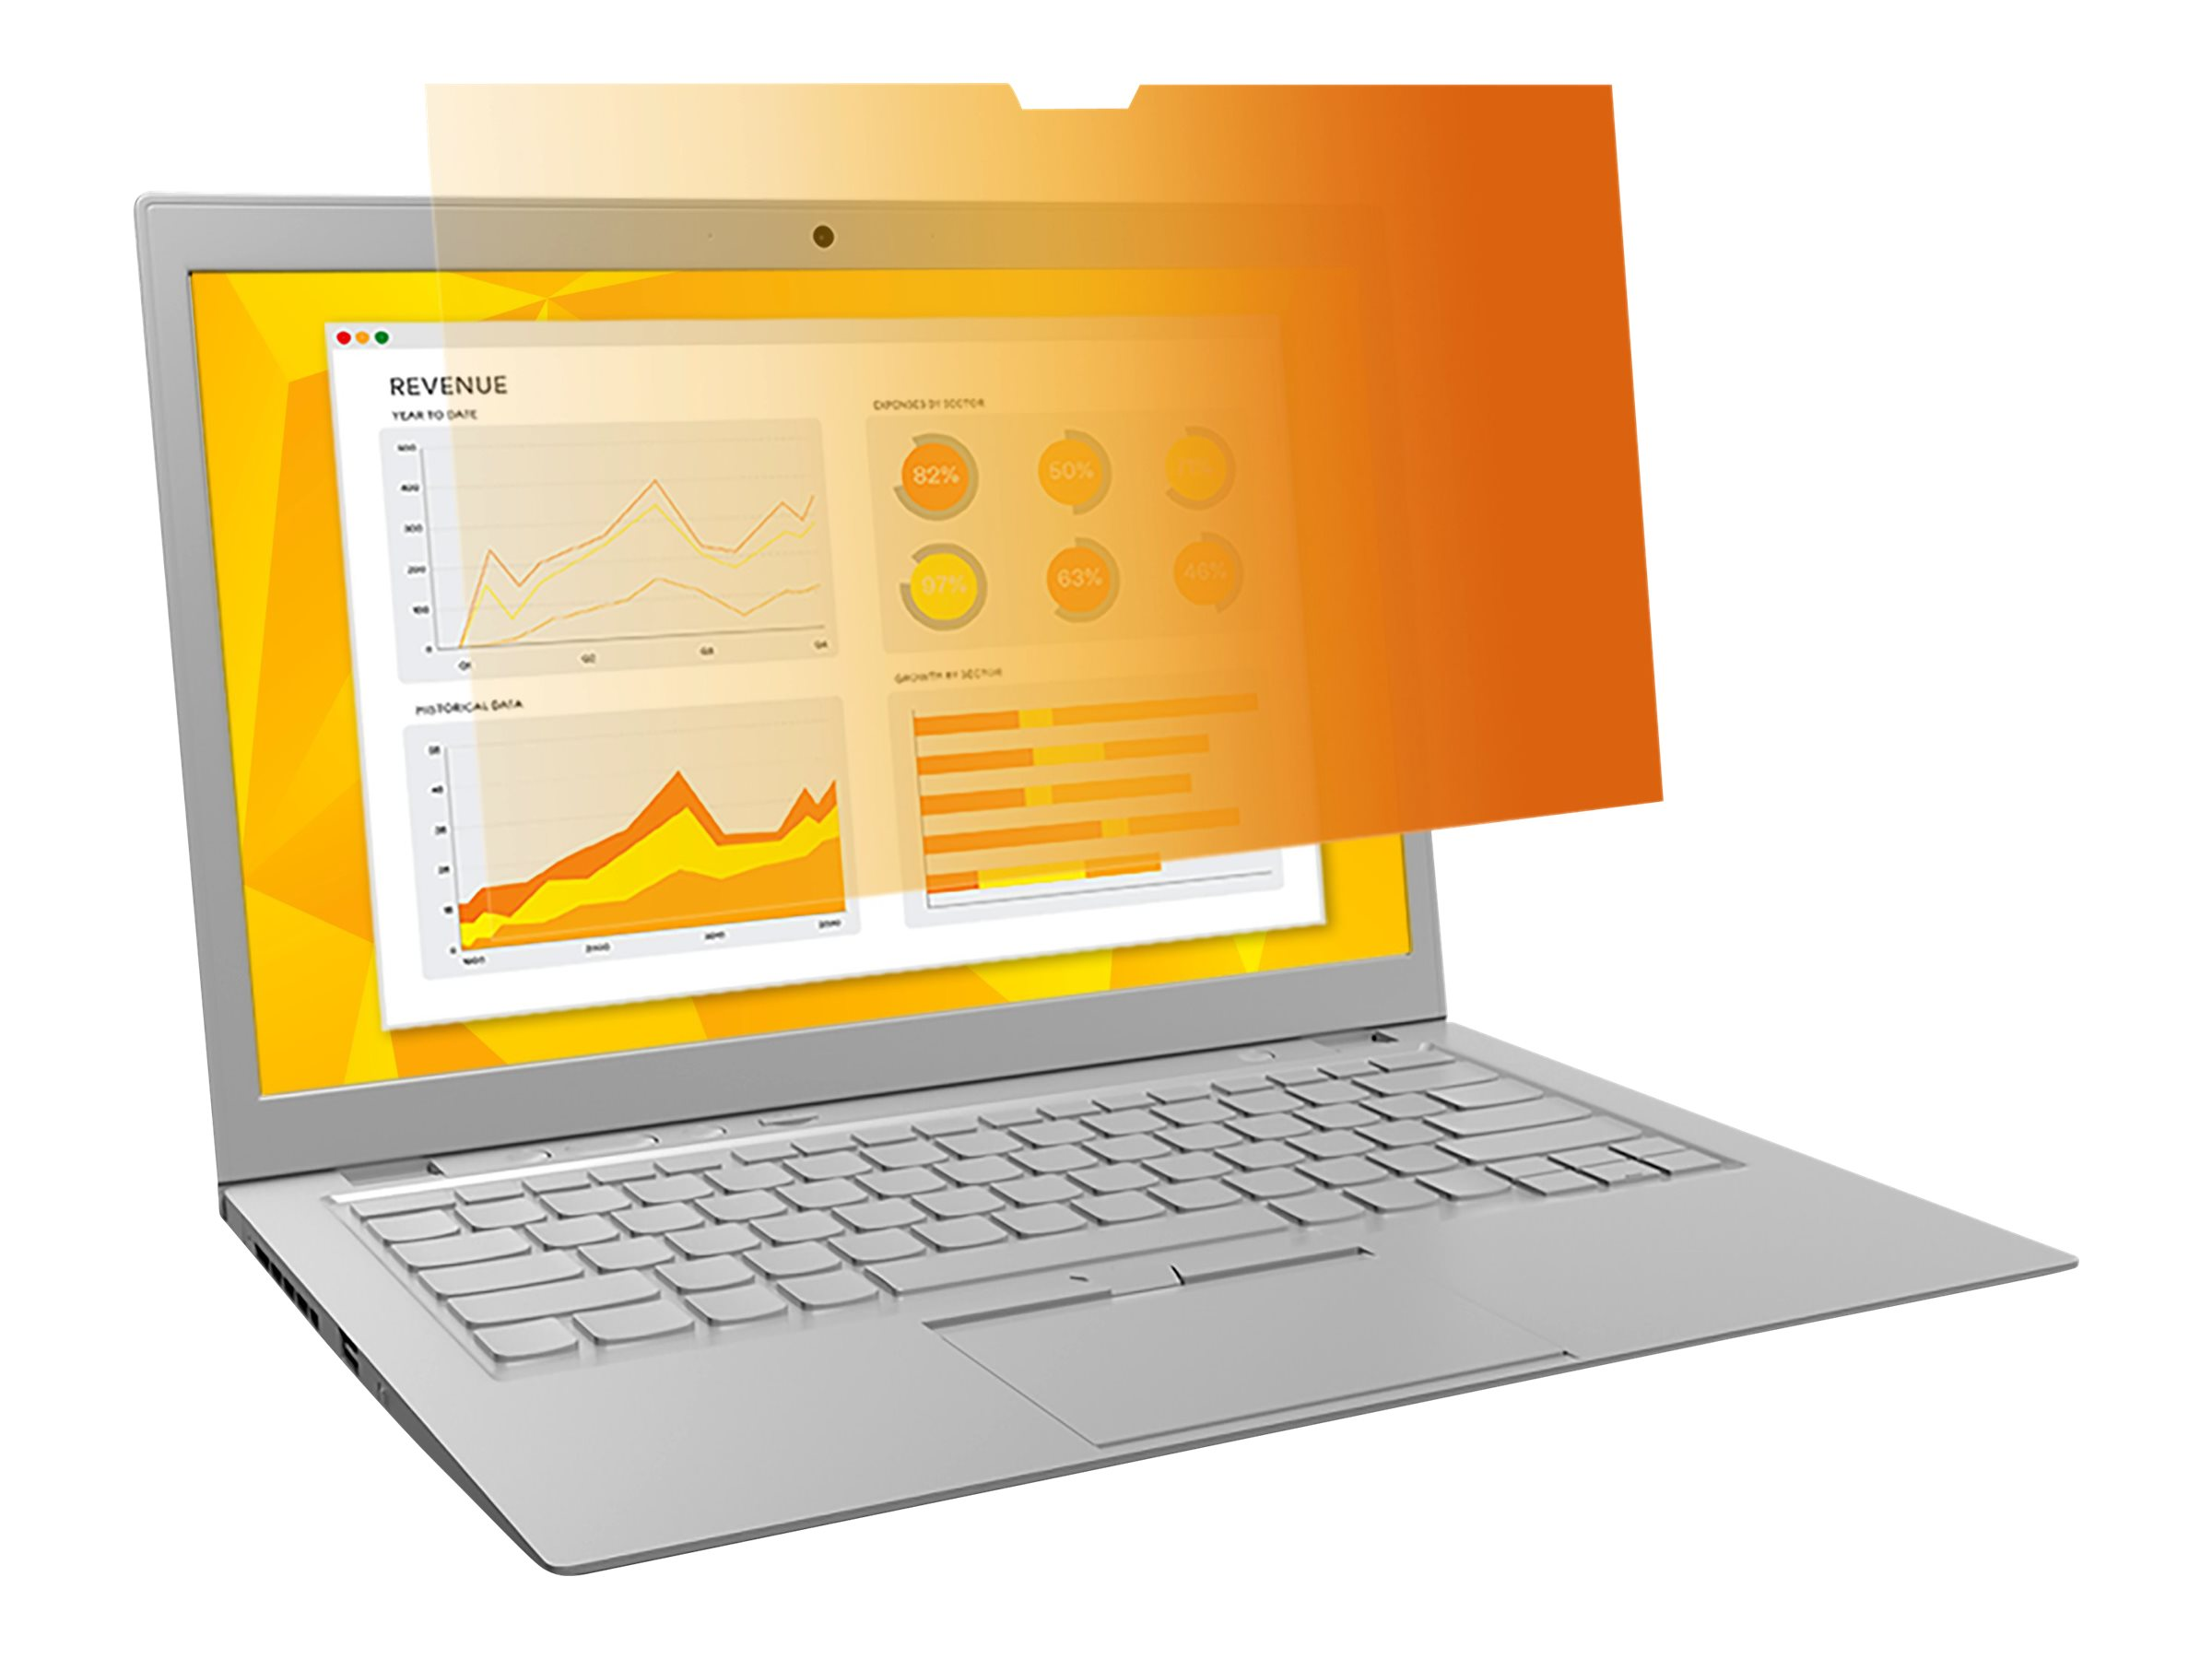 3M Gold Privacy Filter GFNAP008 notebook privacy filter